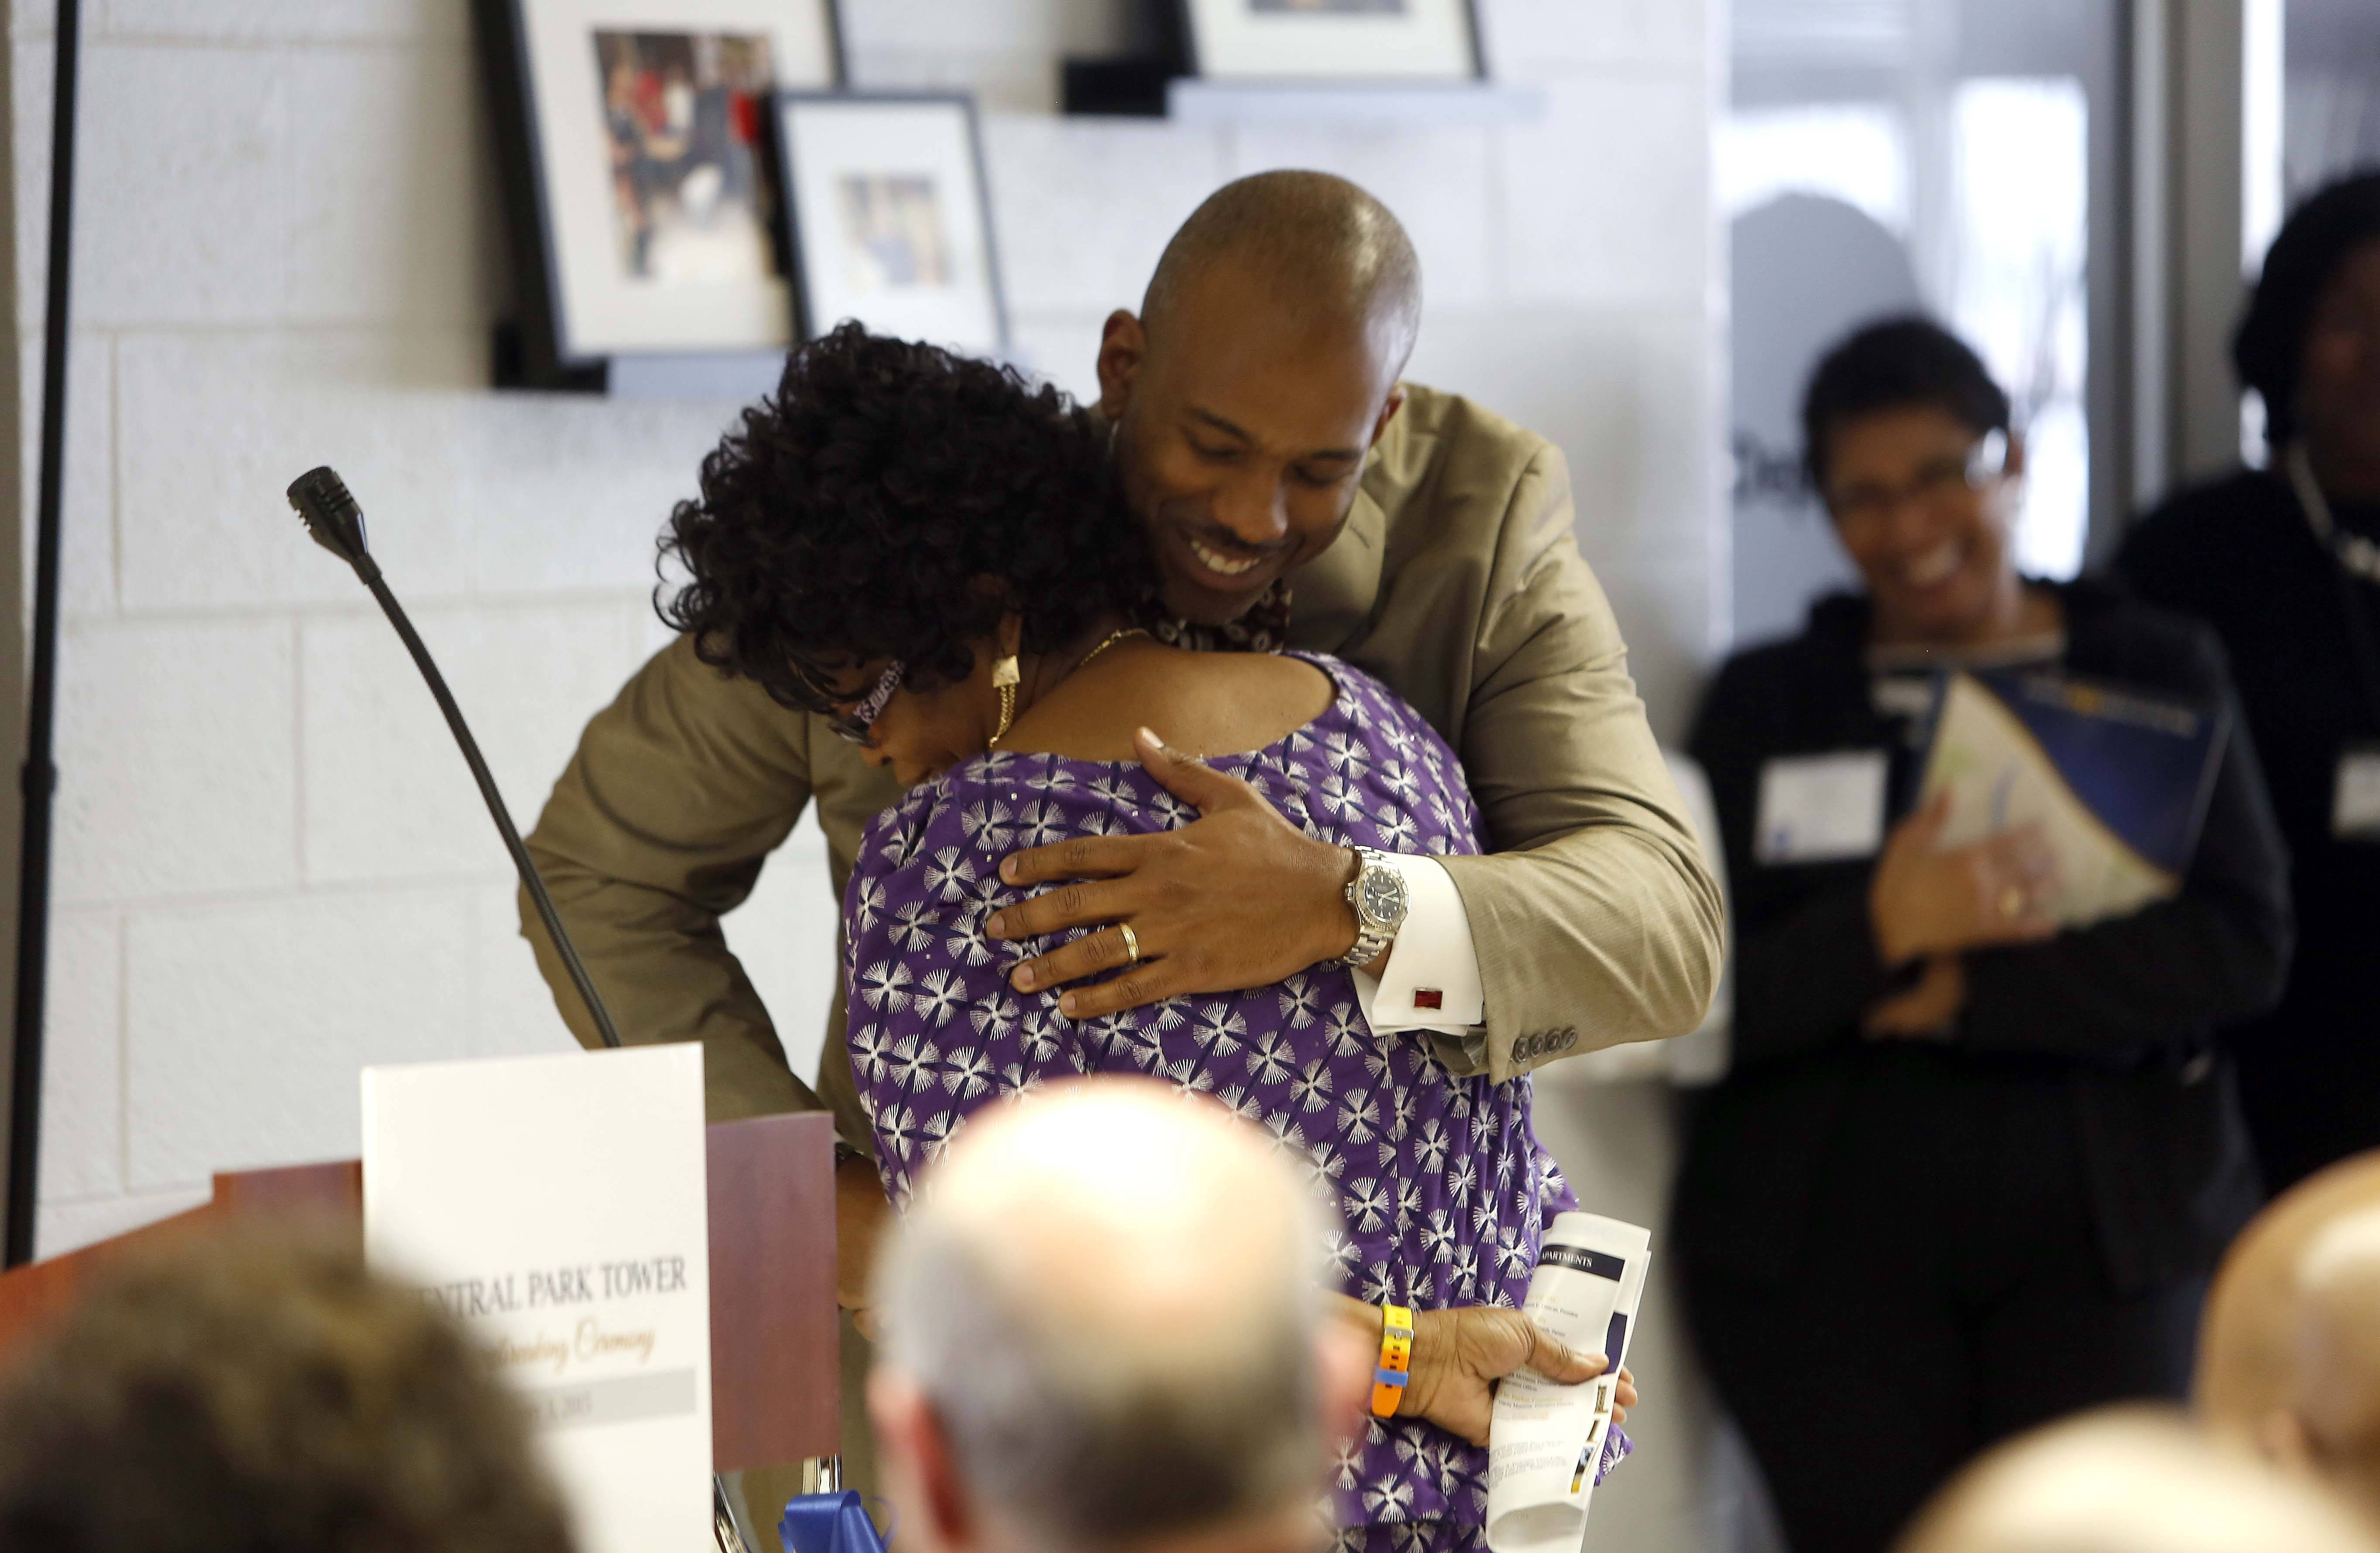 Central Park Tower resident Elizabeth Odumuyiwa gets a hug from Damon E. Duncan, CEO of the Housing Authority of Elgin, on Tuesday during the groundbreaking ceremony for a project to expand and renovate Central Park Tower at 120 S. State St.